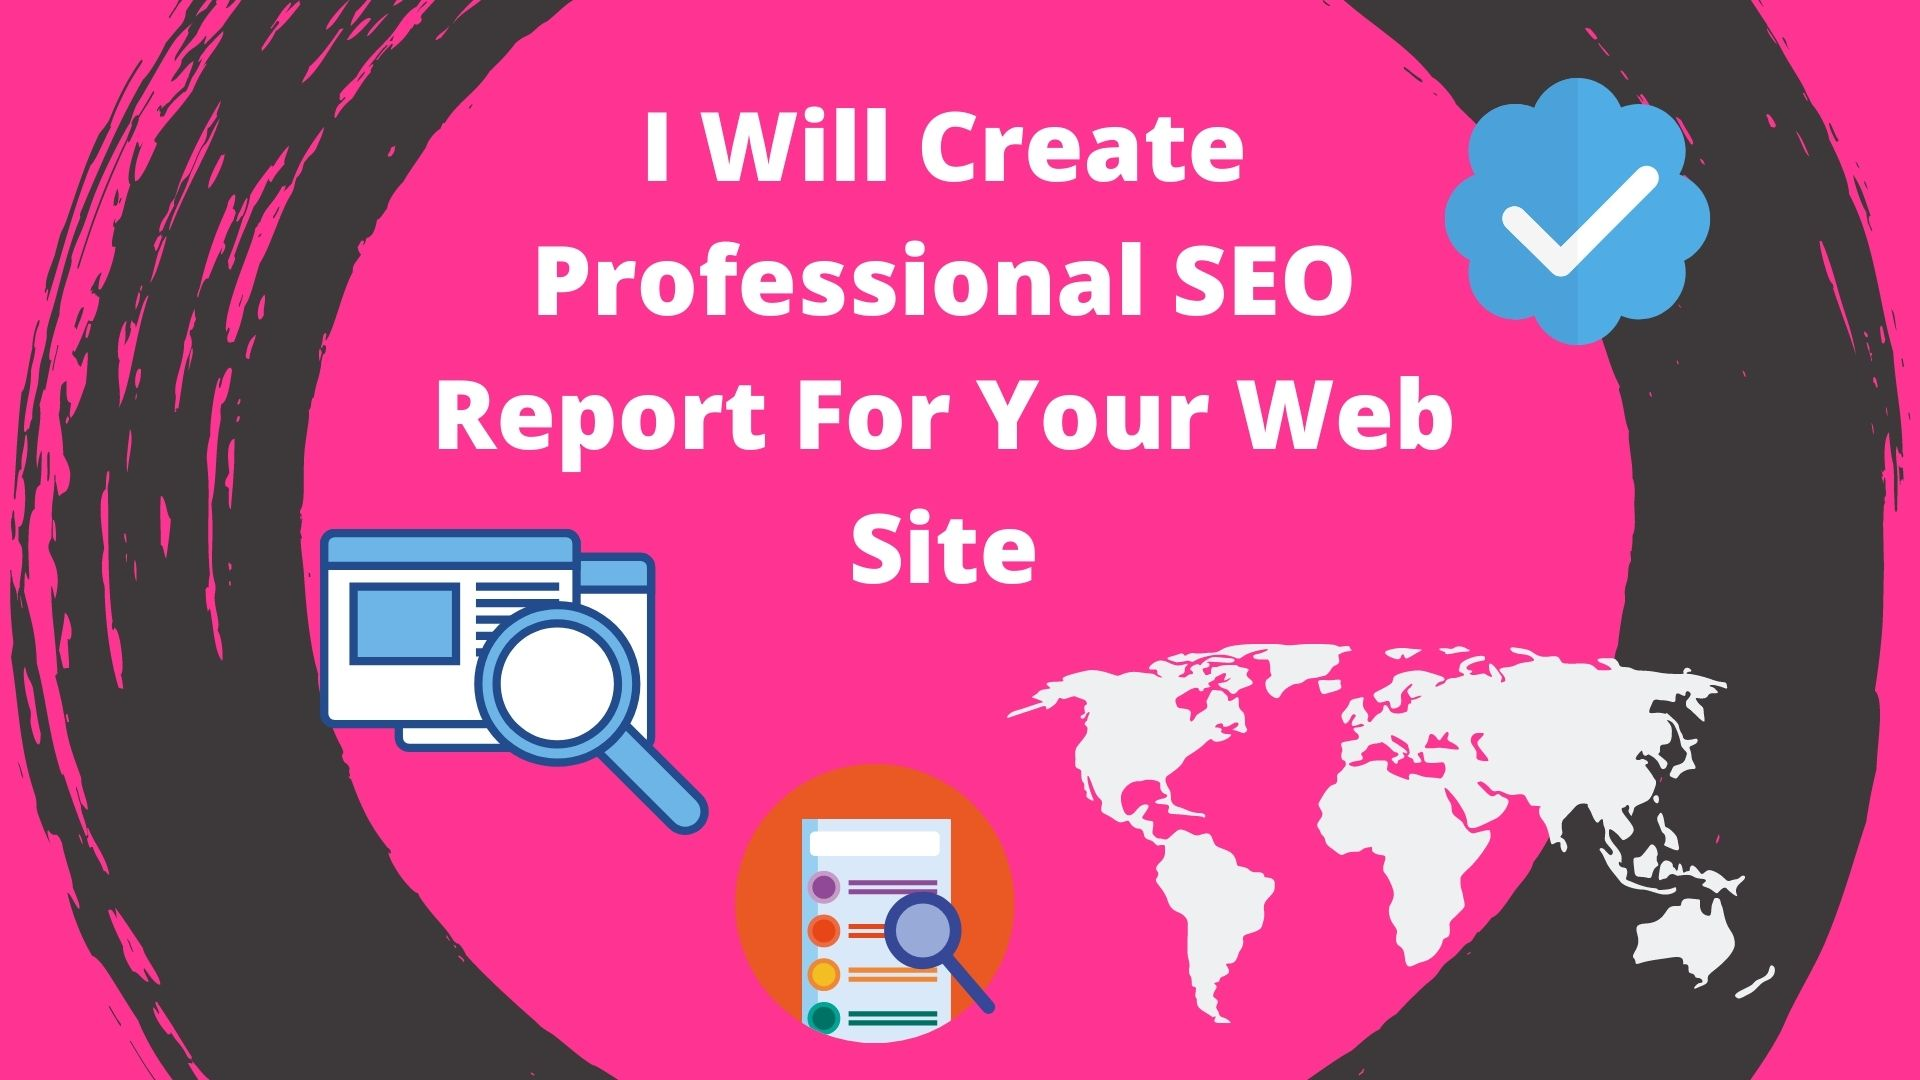 Create Professional SEO Audit Report For Your Web Site